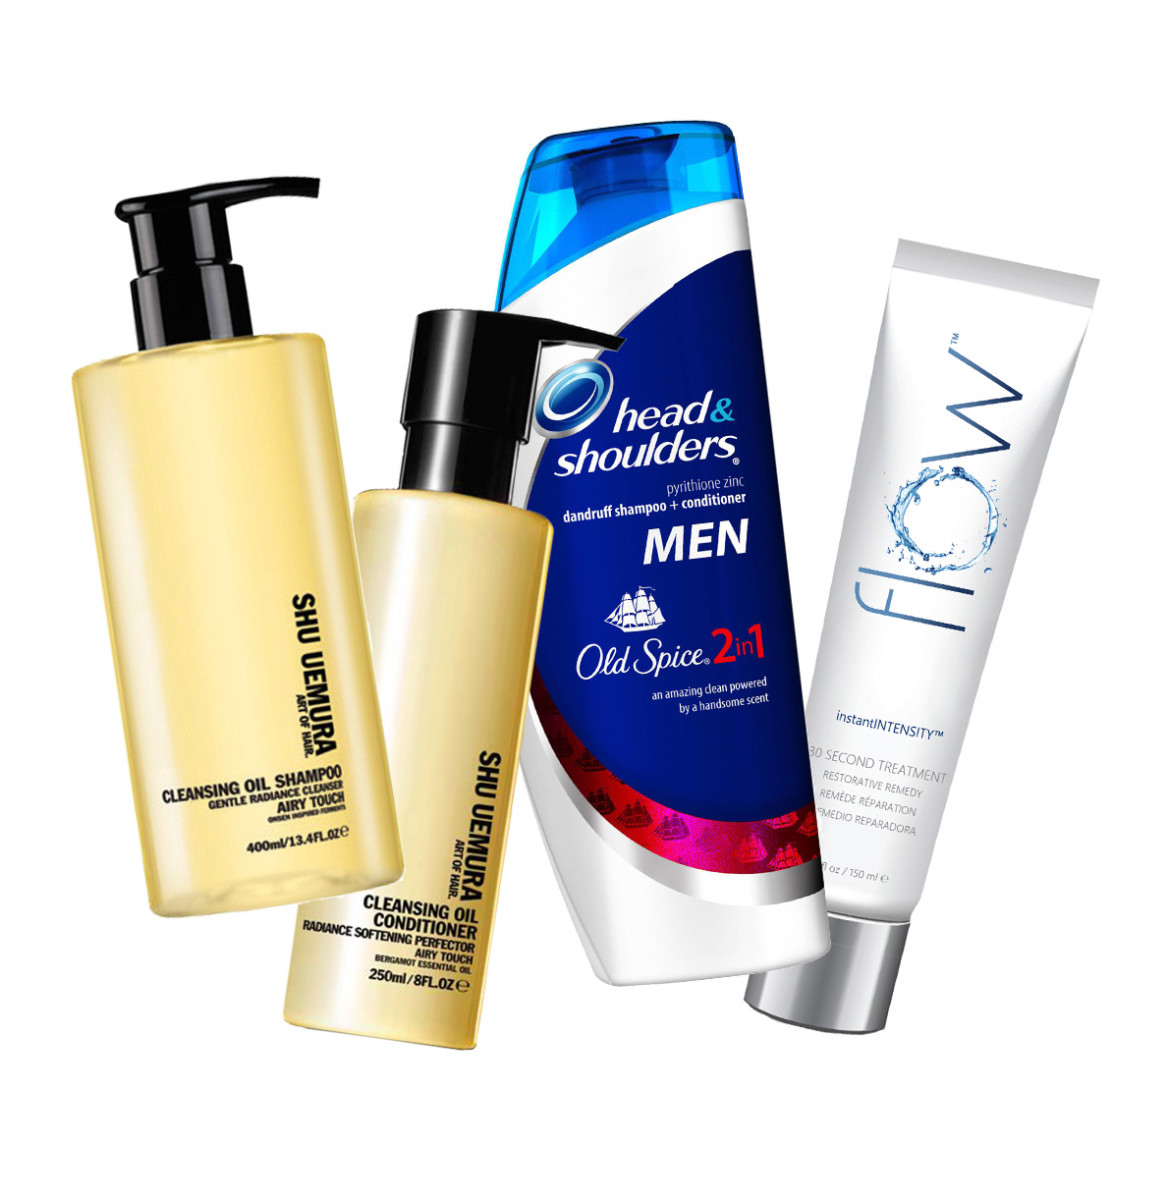 Shu Uemura Cleansing Oil Shampoo Conditioner Head and Shoulders 2-in-1 Flow 30 Second Treatment